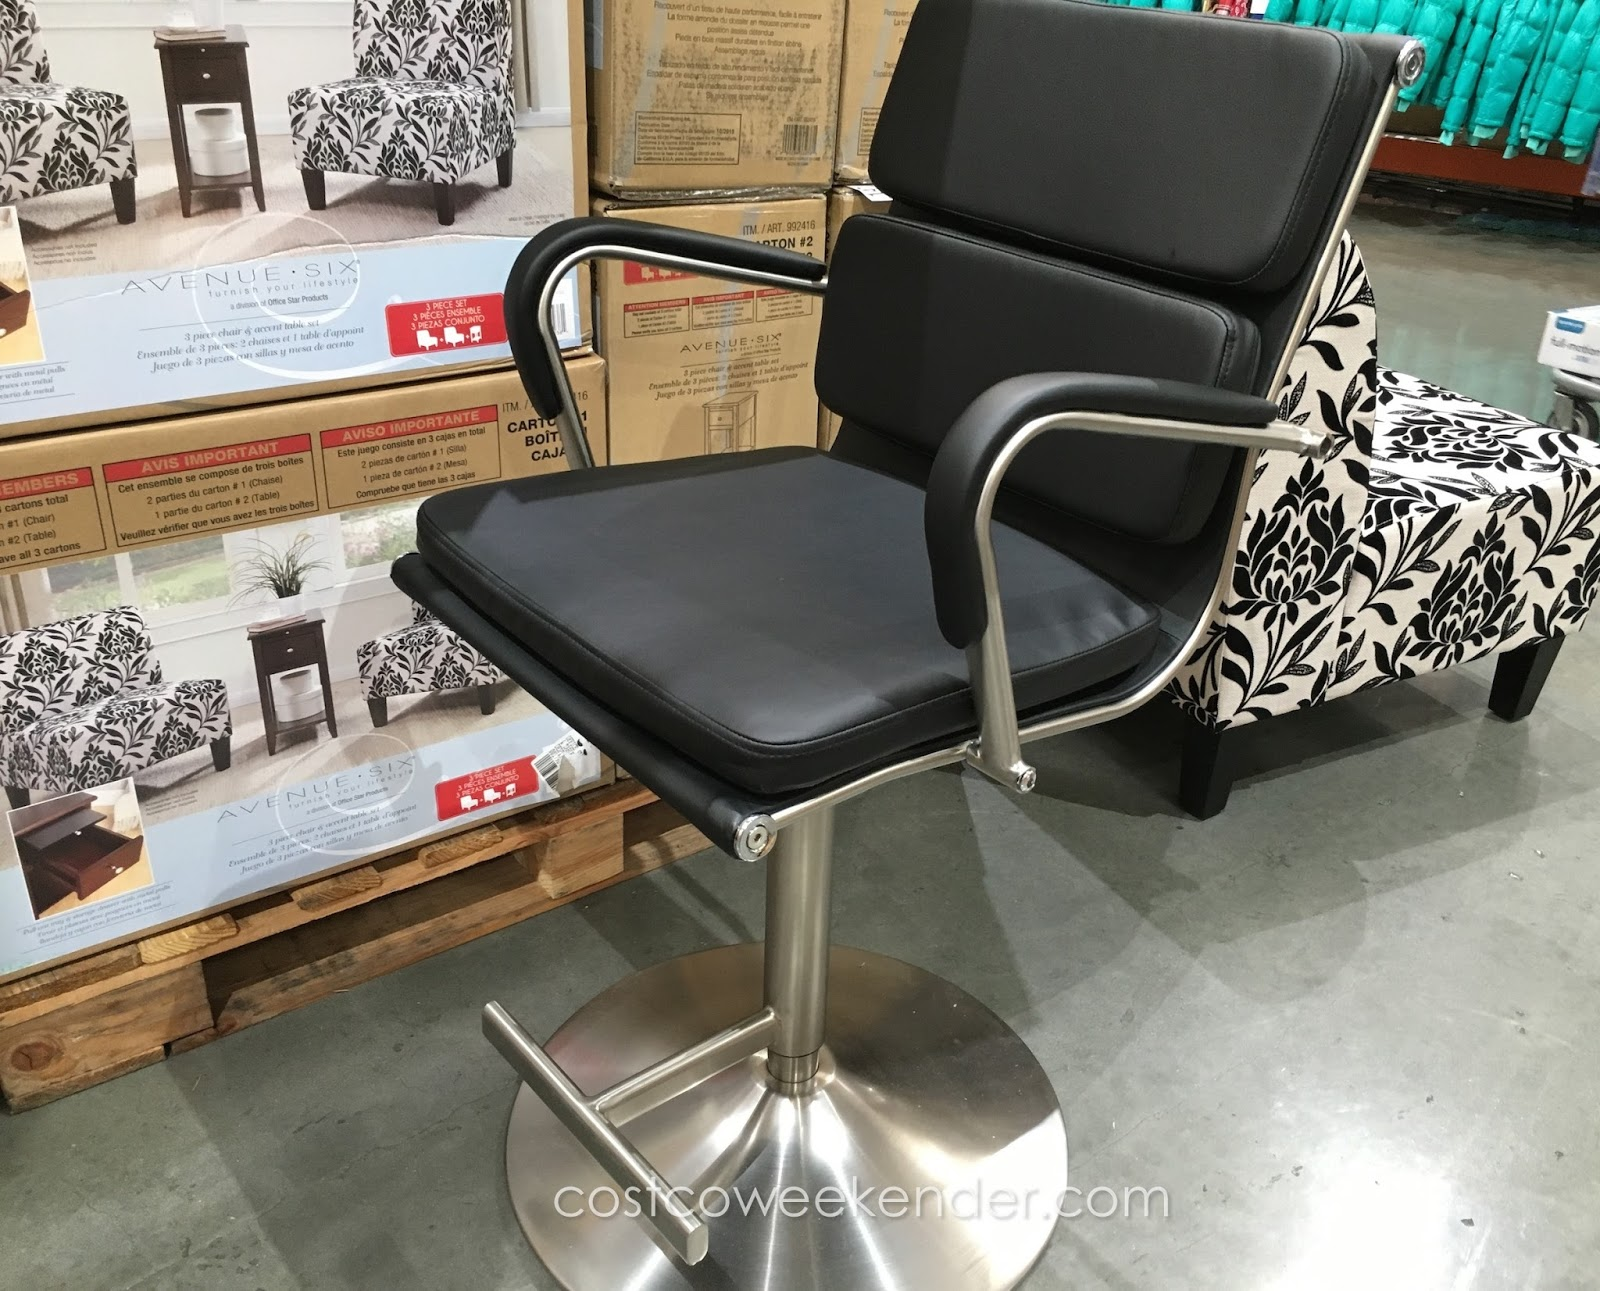 Bayside Furnishings Gas Lift Bar Stool Costco Weekender